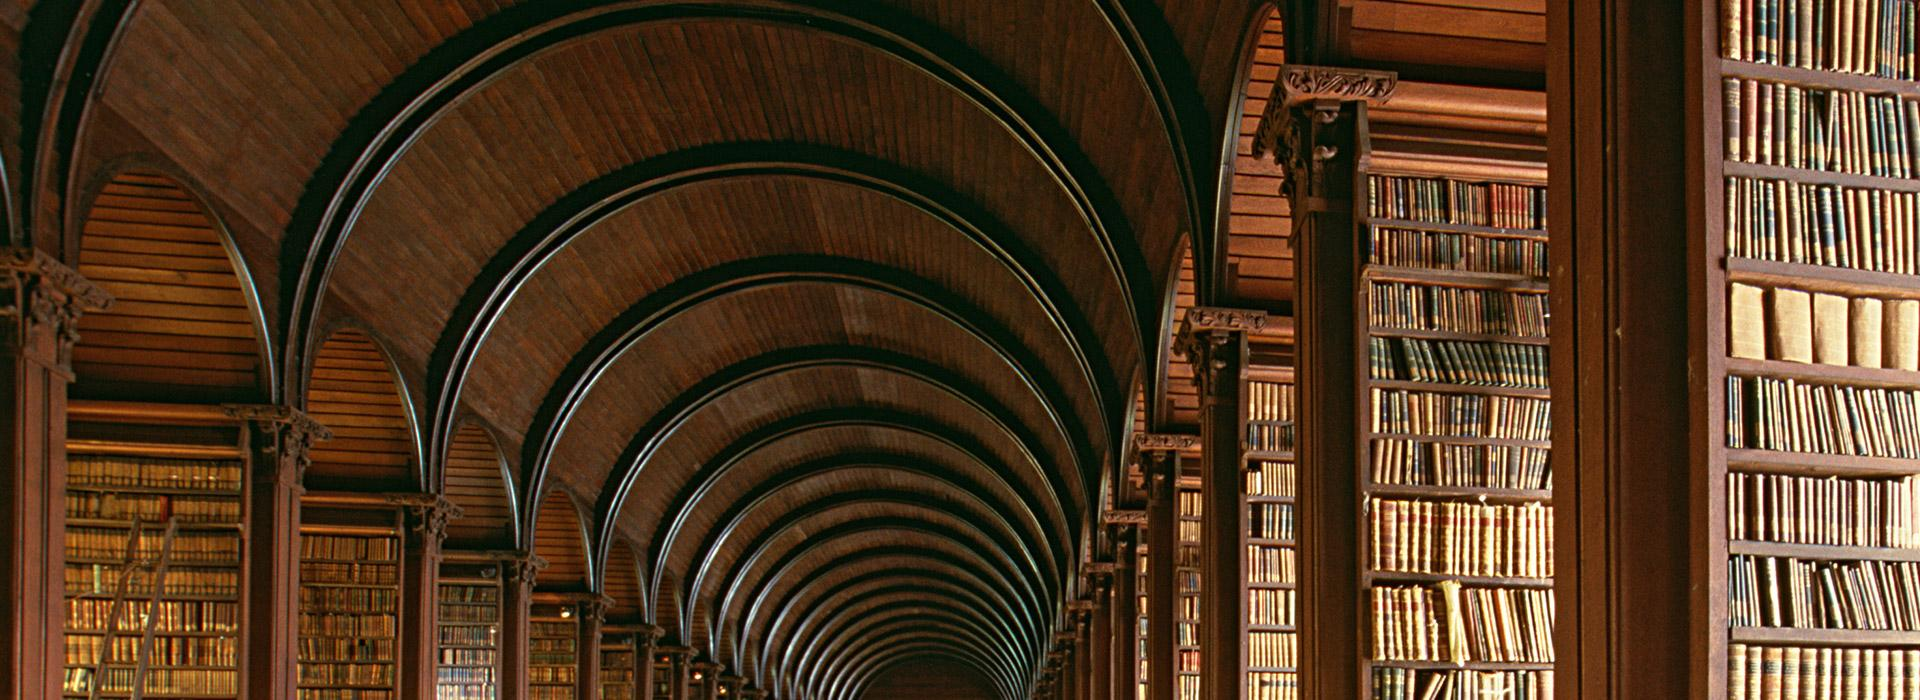 Arched ceiling in Trinity College Library in Dublin Ireland